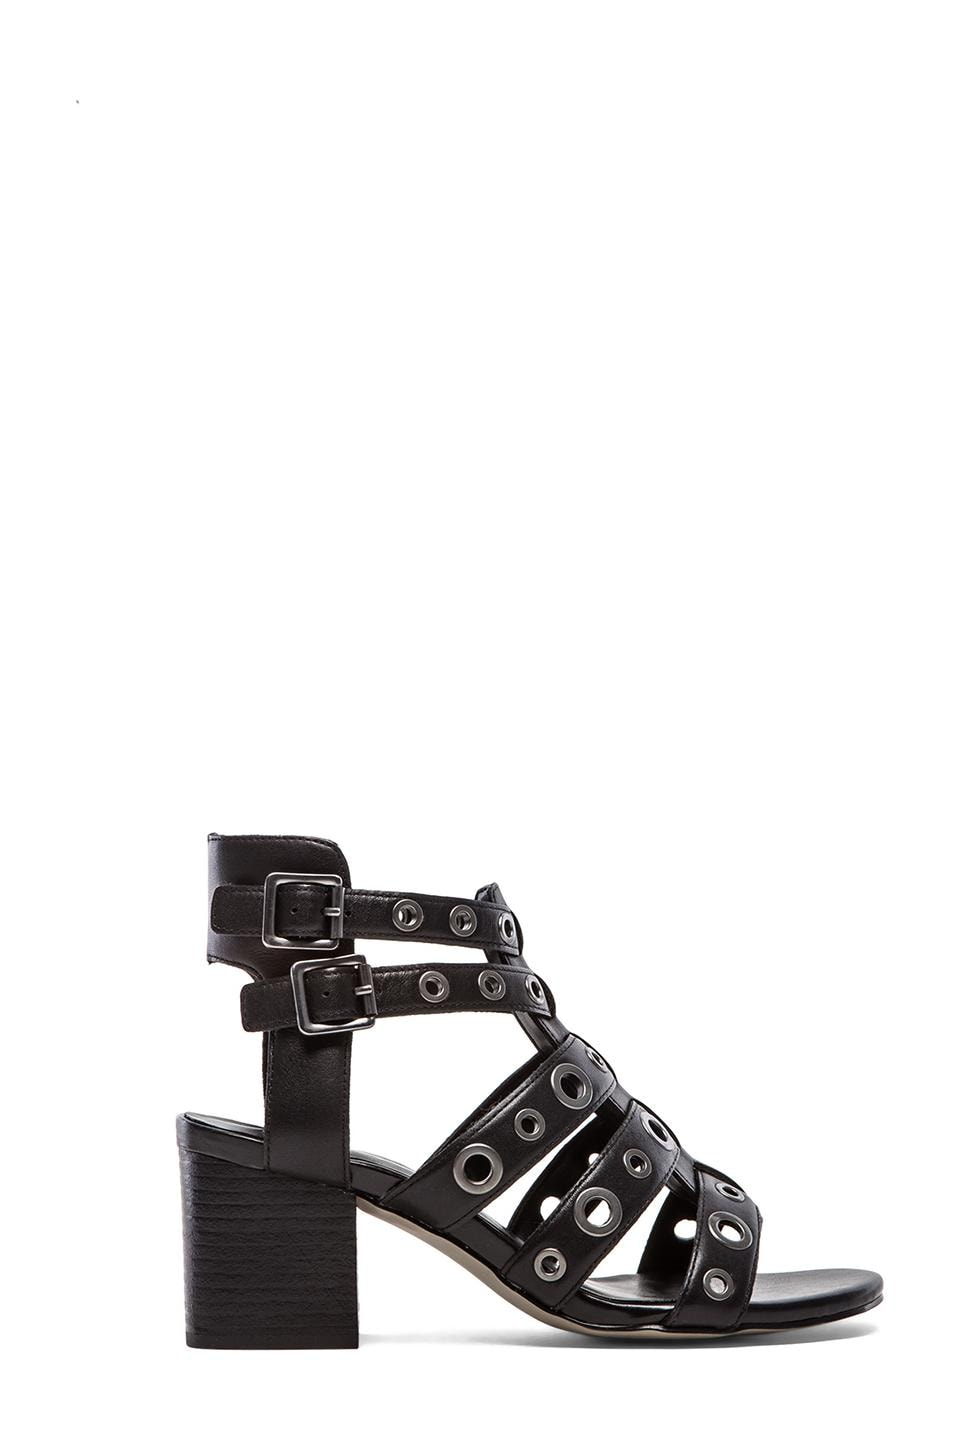 Luxury Rebel Alva Sandal in Black